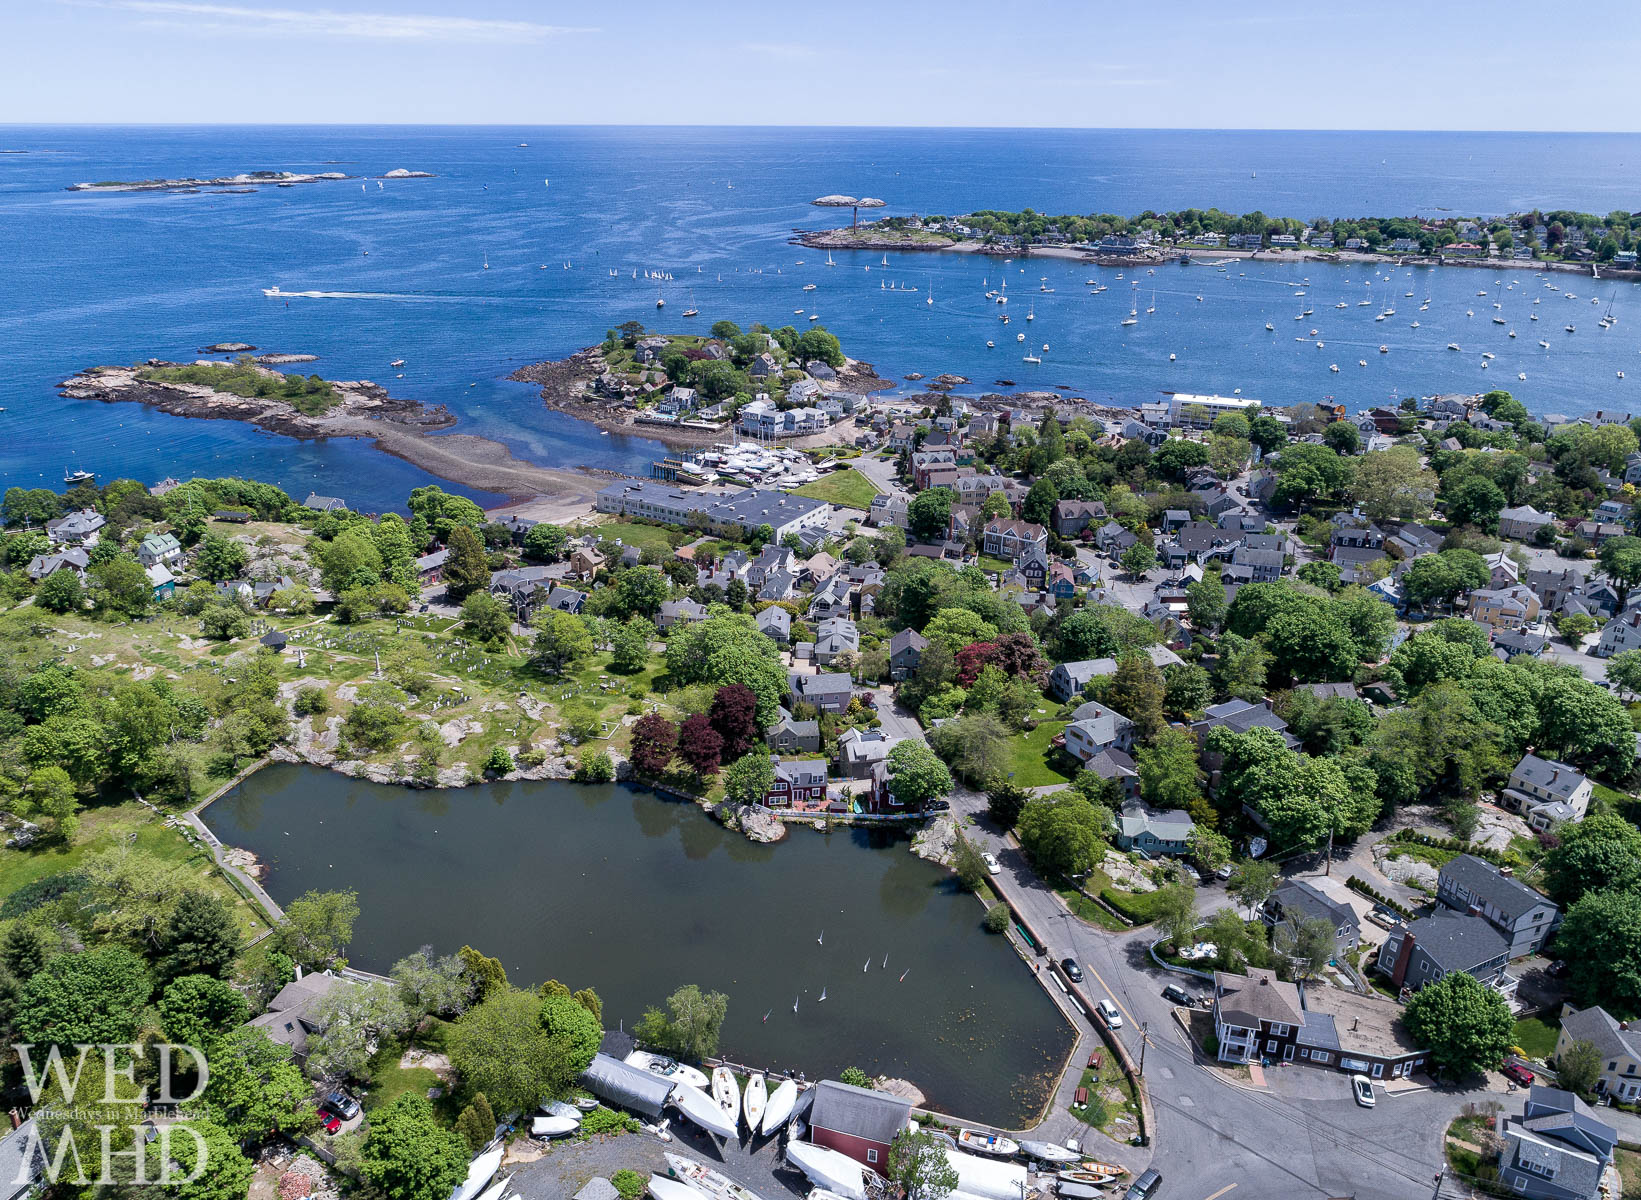 An aerial juxtaposition of big boats in Marblehead Harbor and little boats in Redd's Pond on a May afternoon